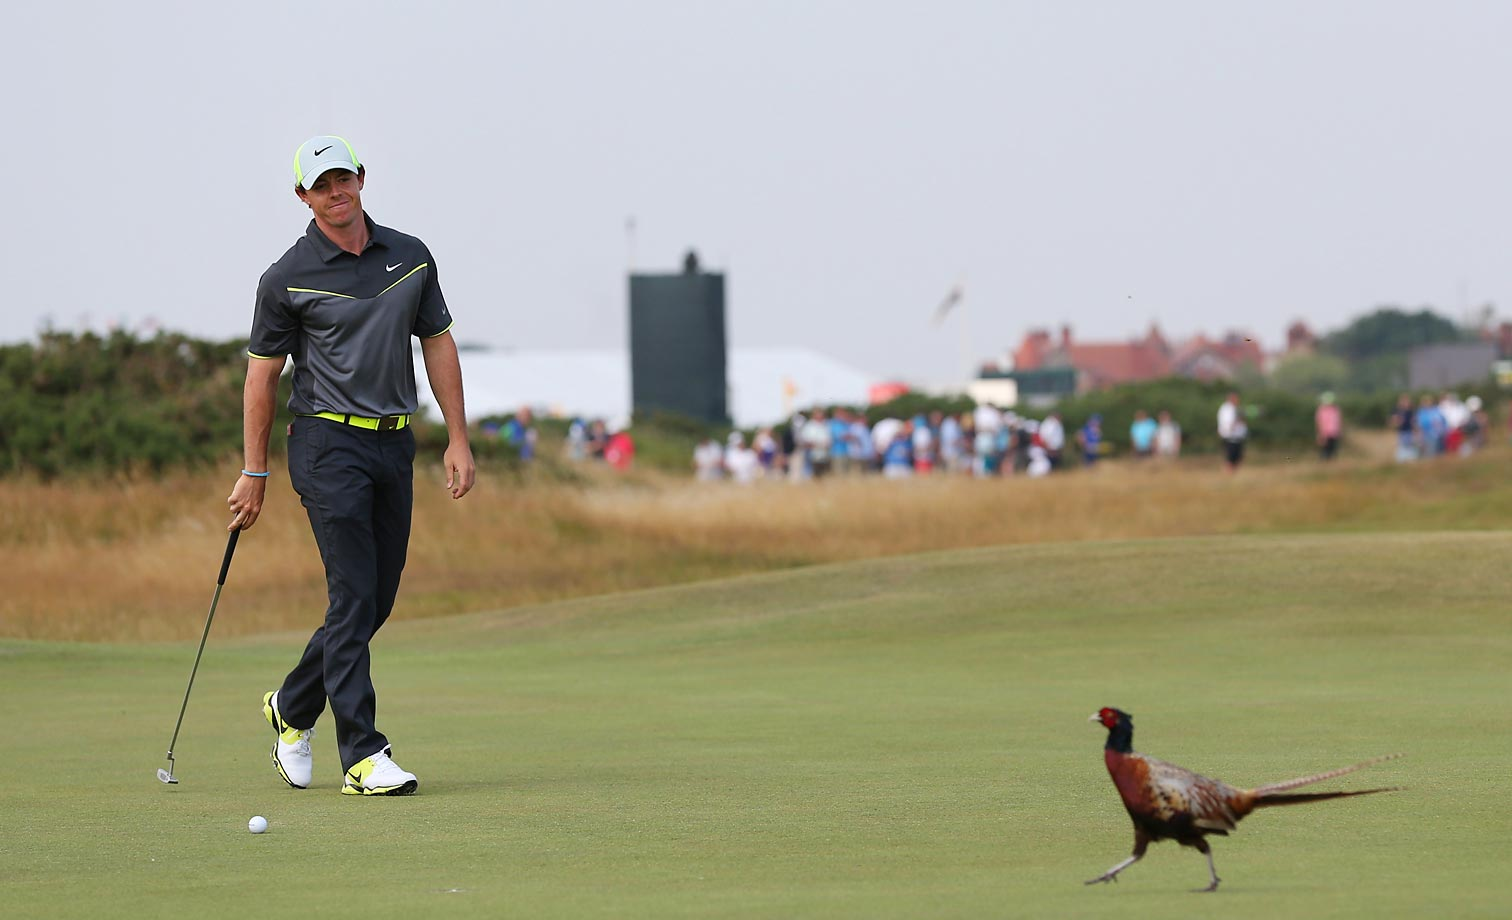 A pheasant moment on the eighth green at the Royal Liverpool golf club.